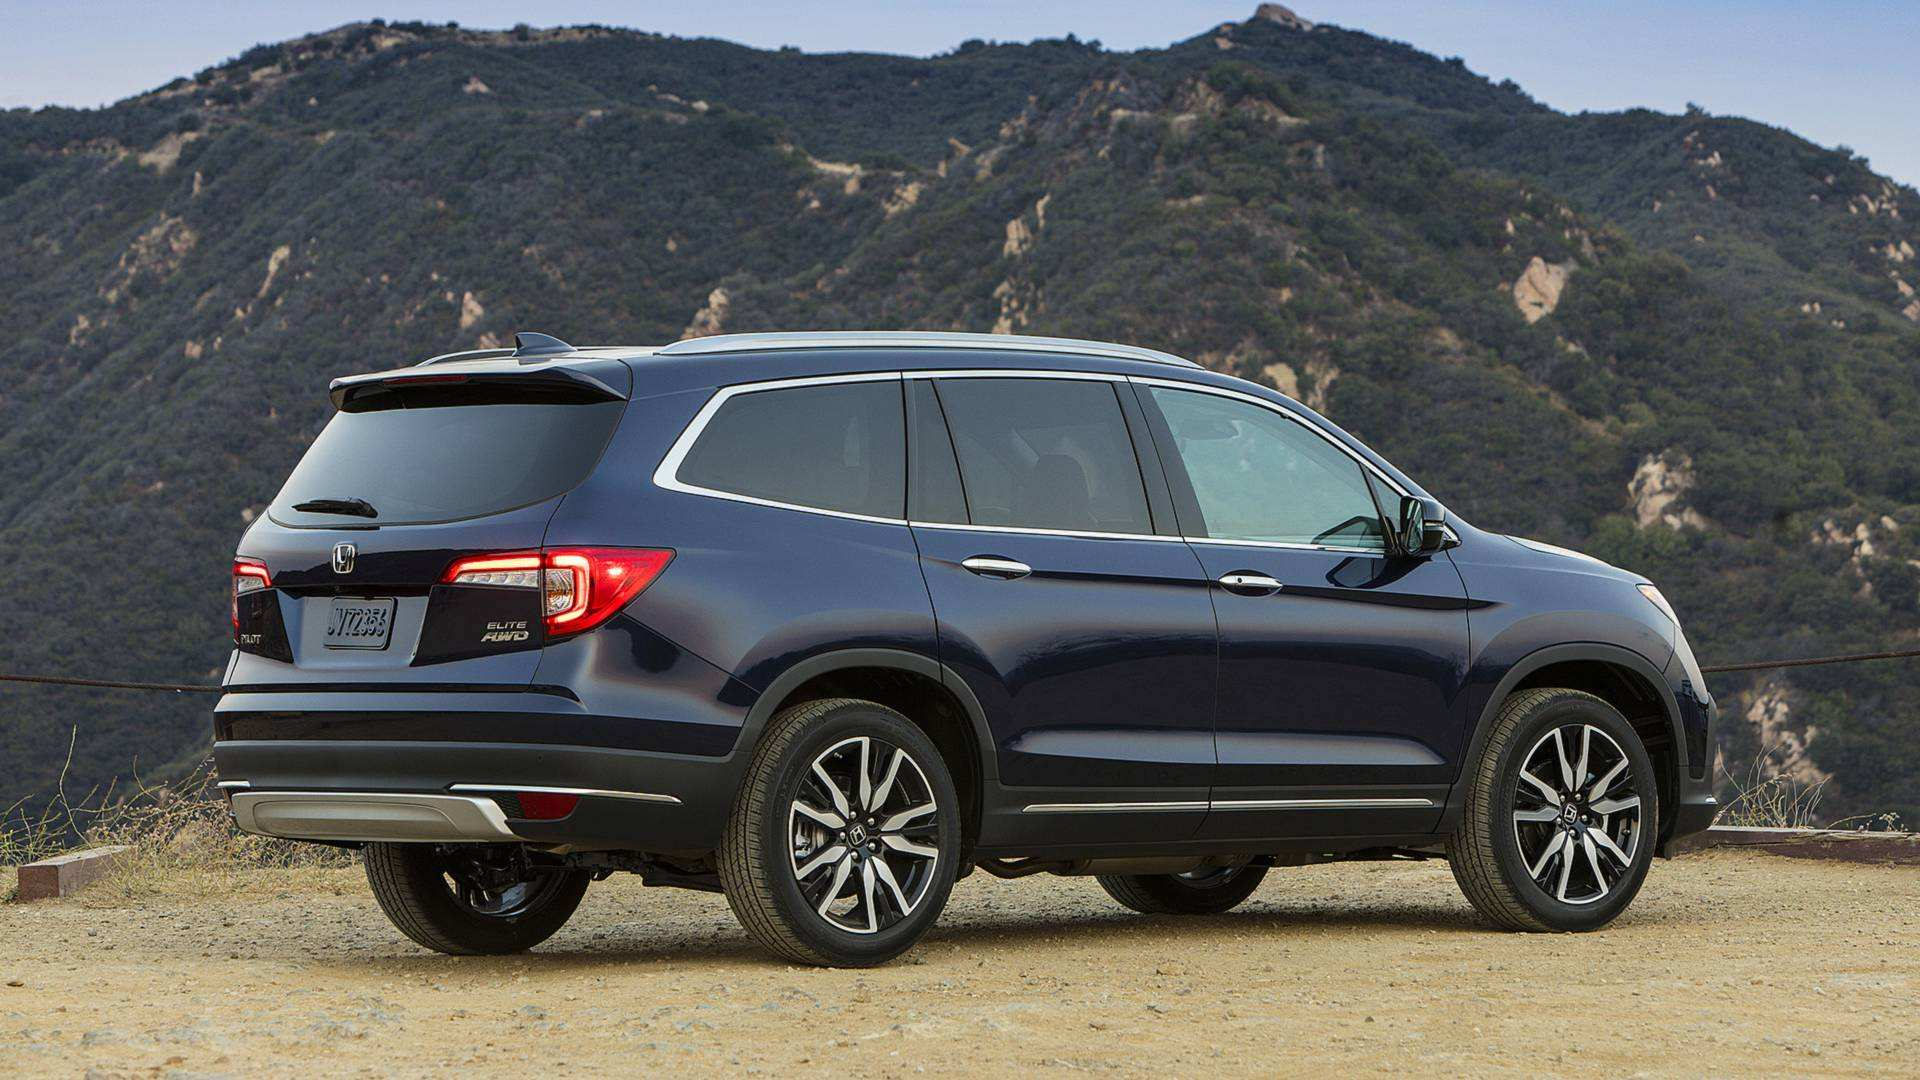 95 All New 2019 Honda Pilot Spy Exterior And Interior